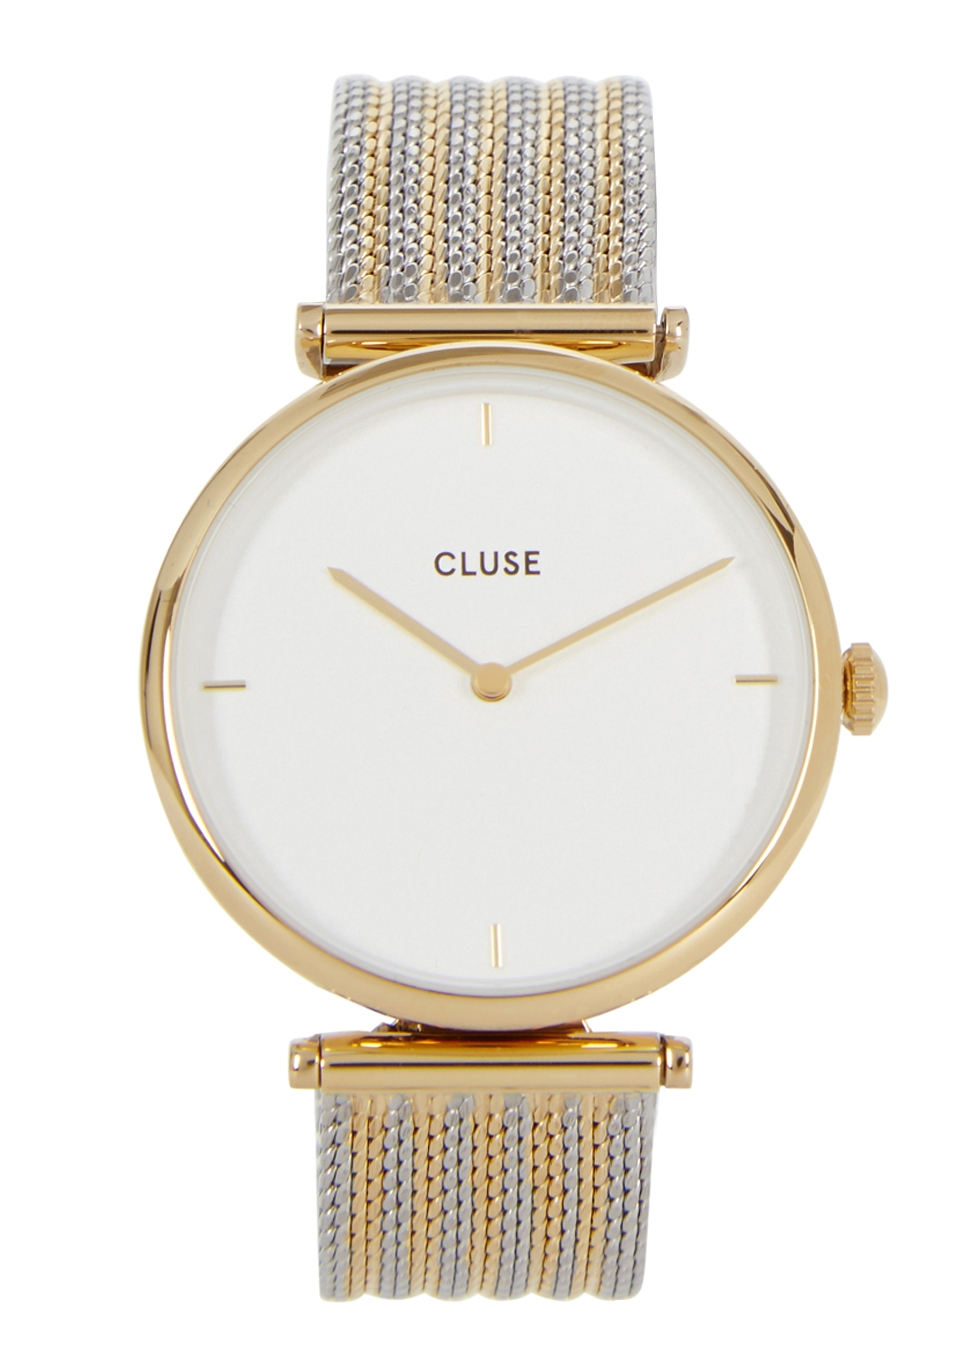 CLUSE TRIOMPHE SILVER AND GOLD TONE WATCH